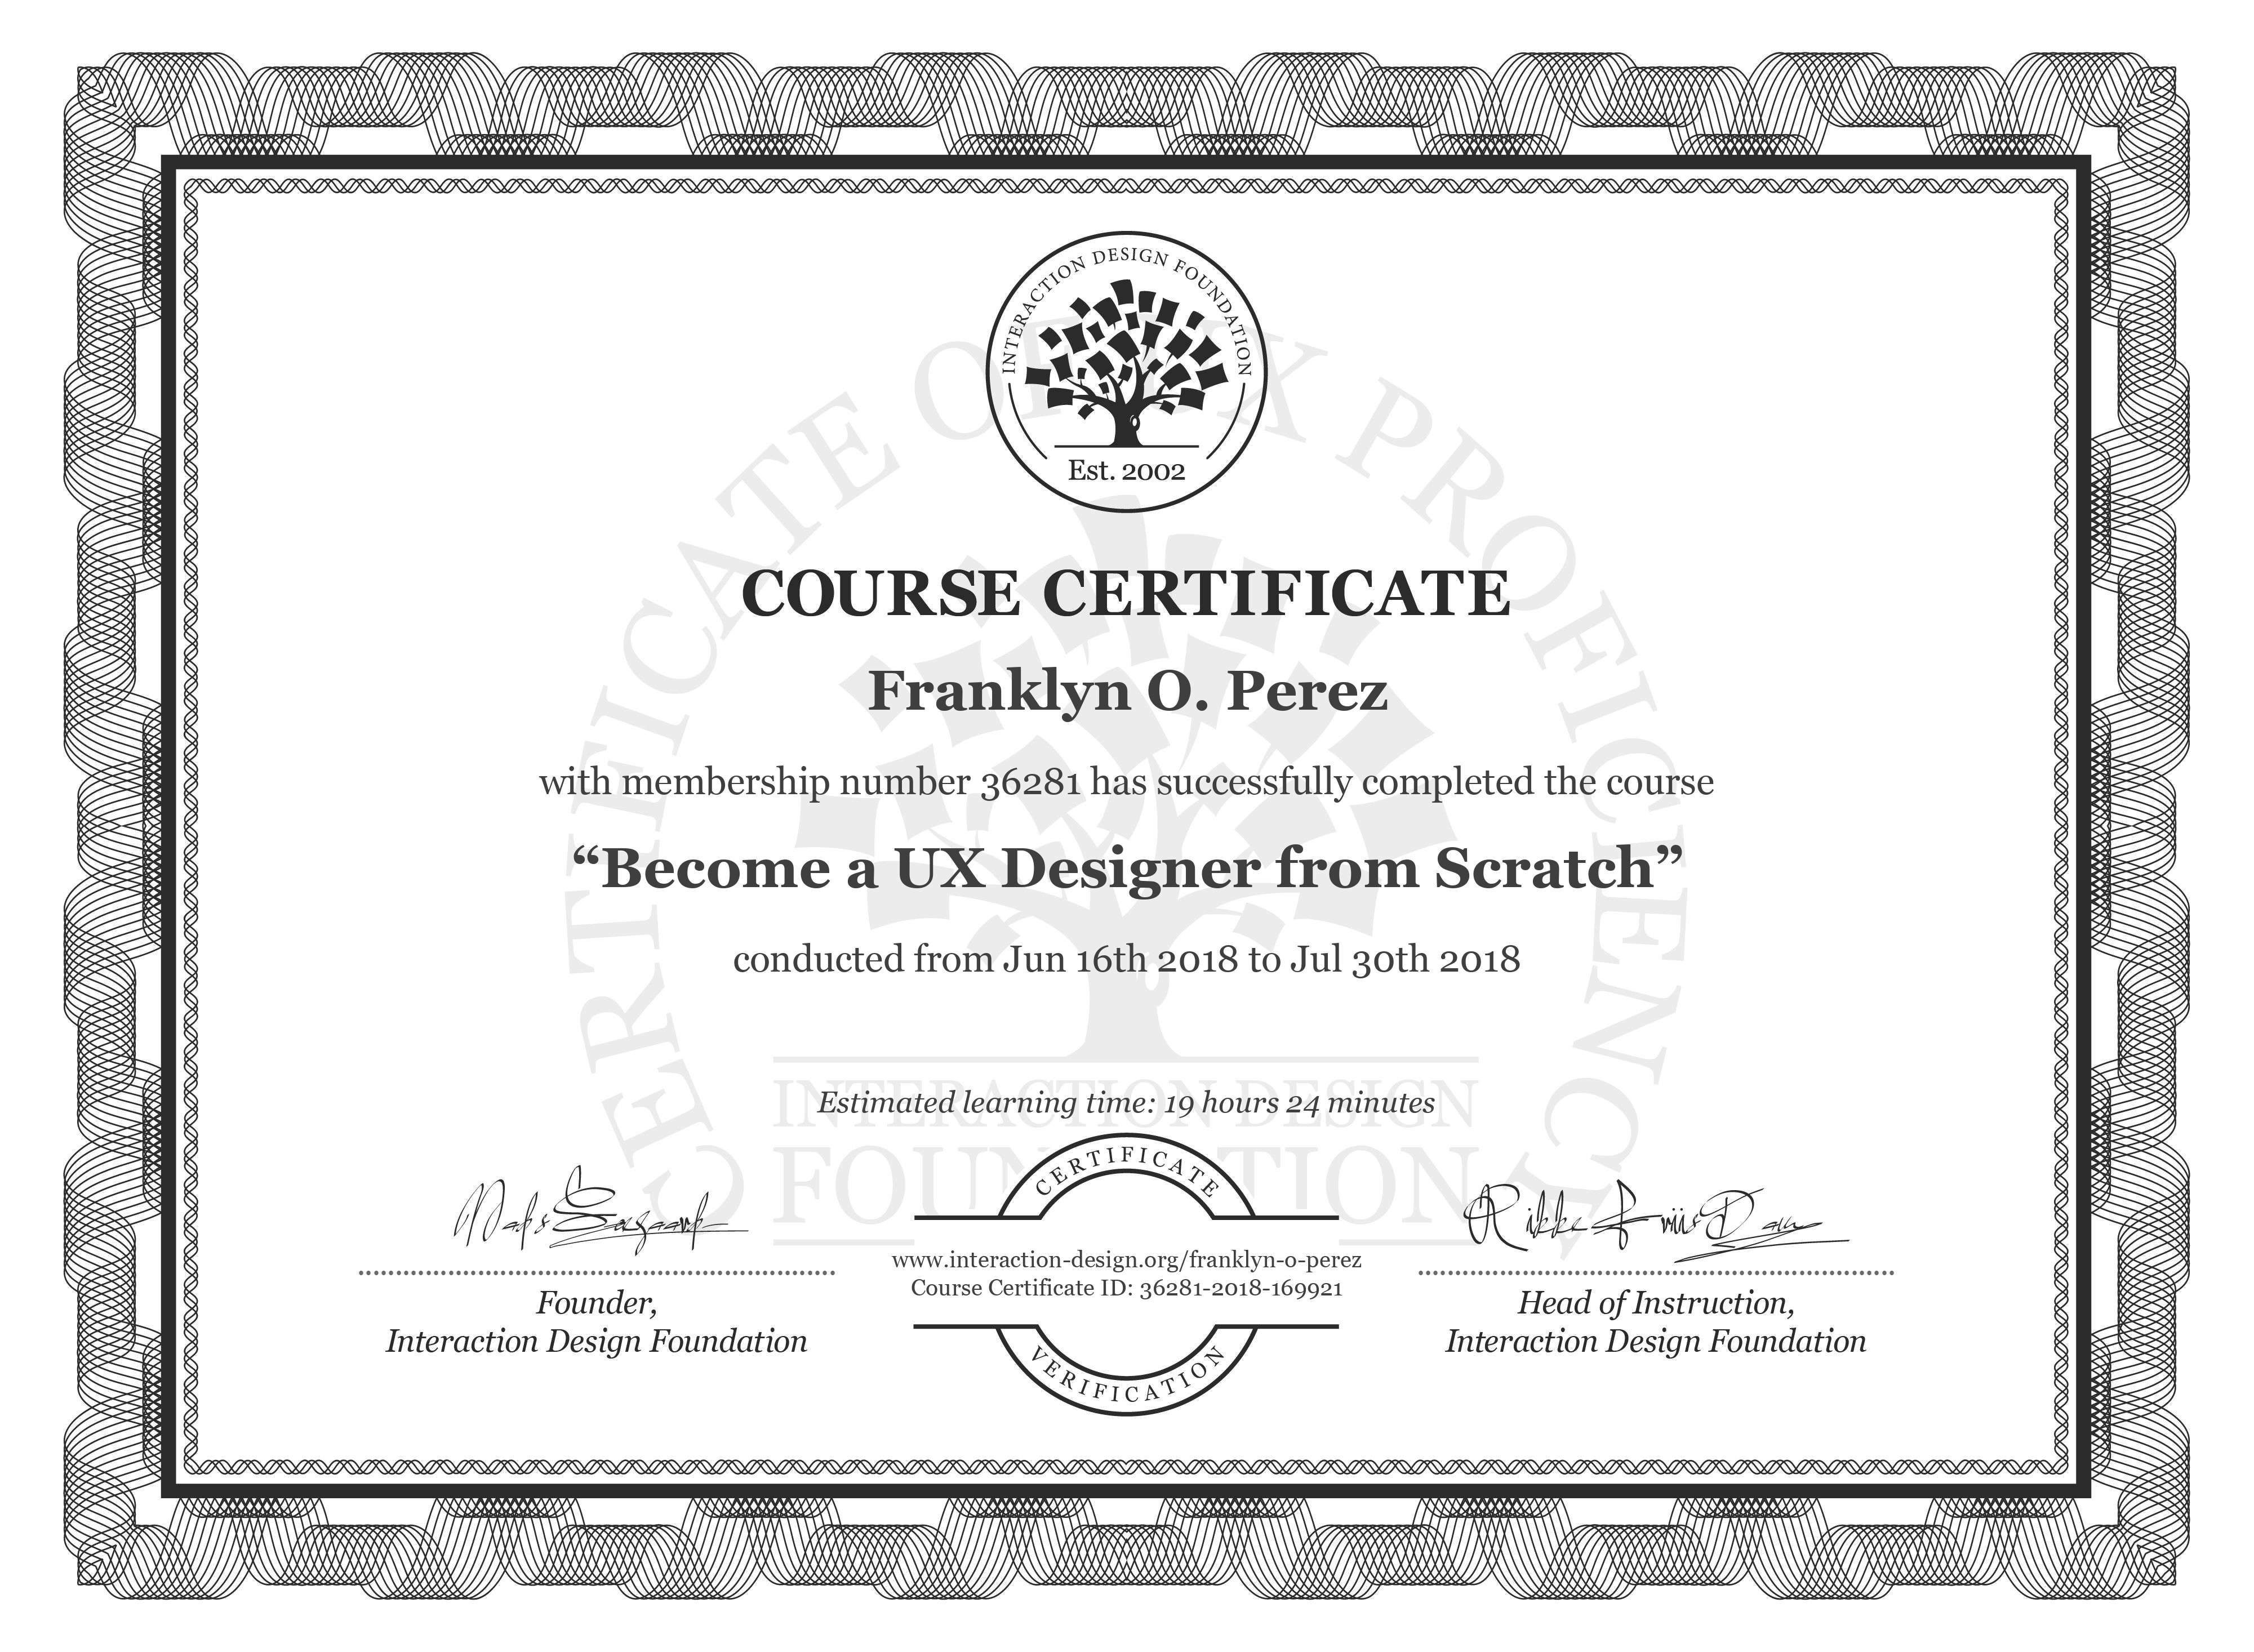 Franklyn O. Perez: Course Certificate - User Experience: The Beginner's Guide